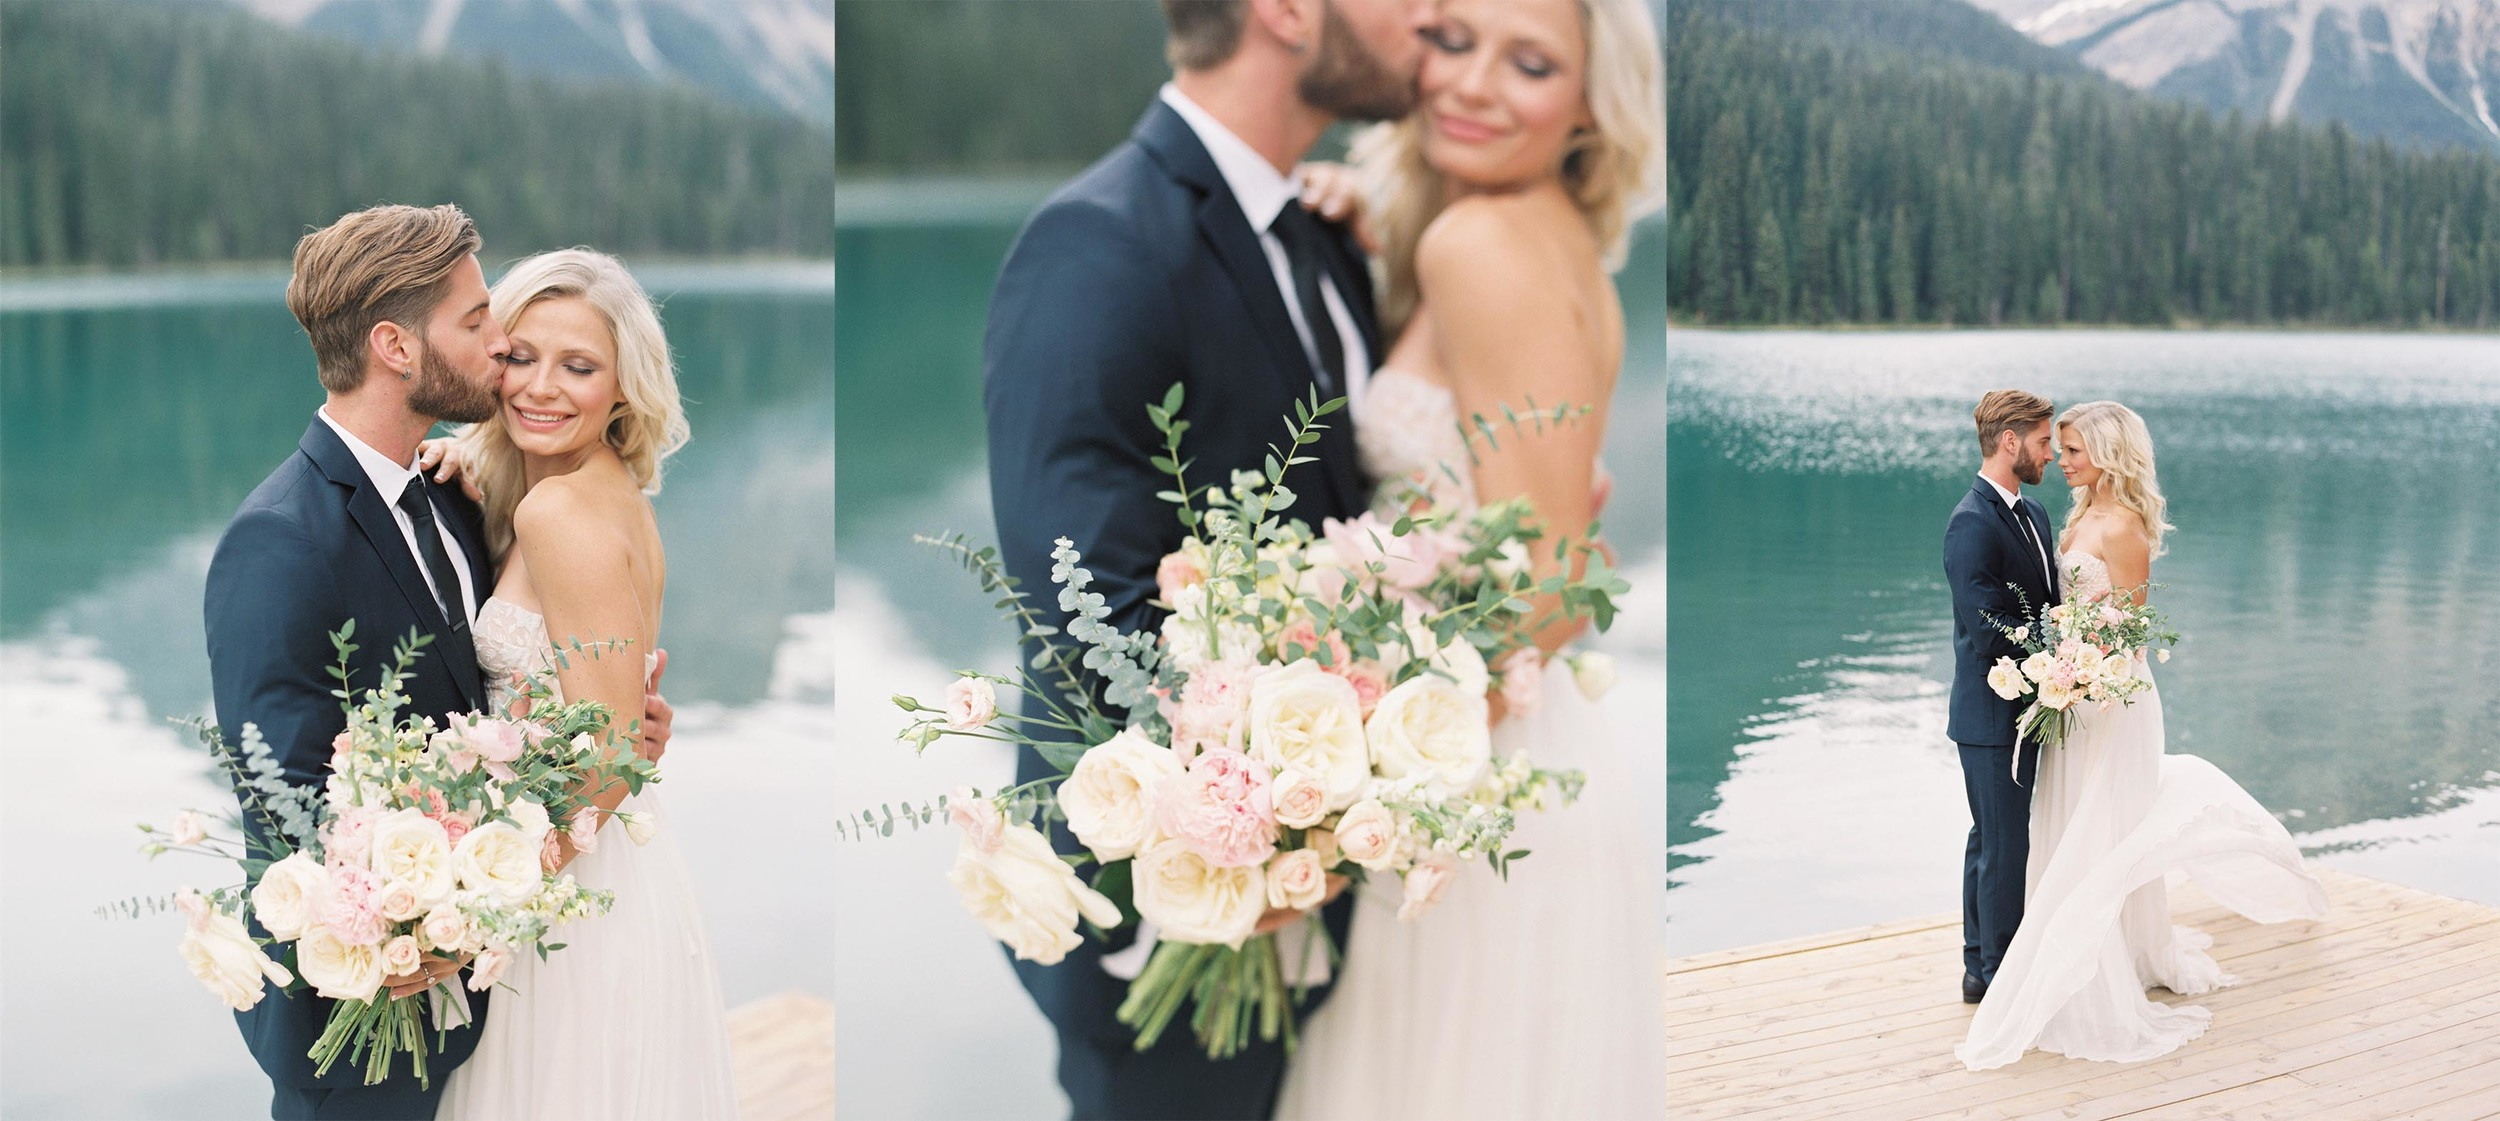 toronto-ontario-high-end-wedding-photographer-richelle-hunter-photography-banff-emerald-lake.jpg